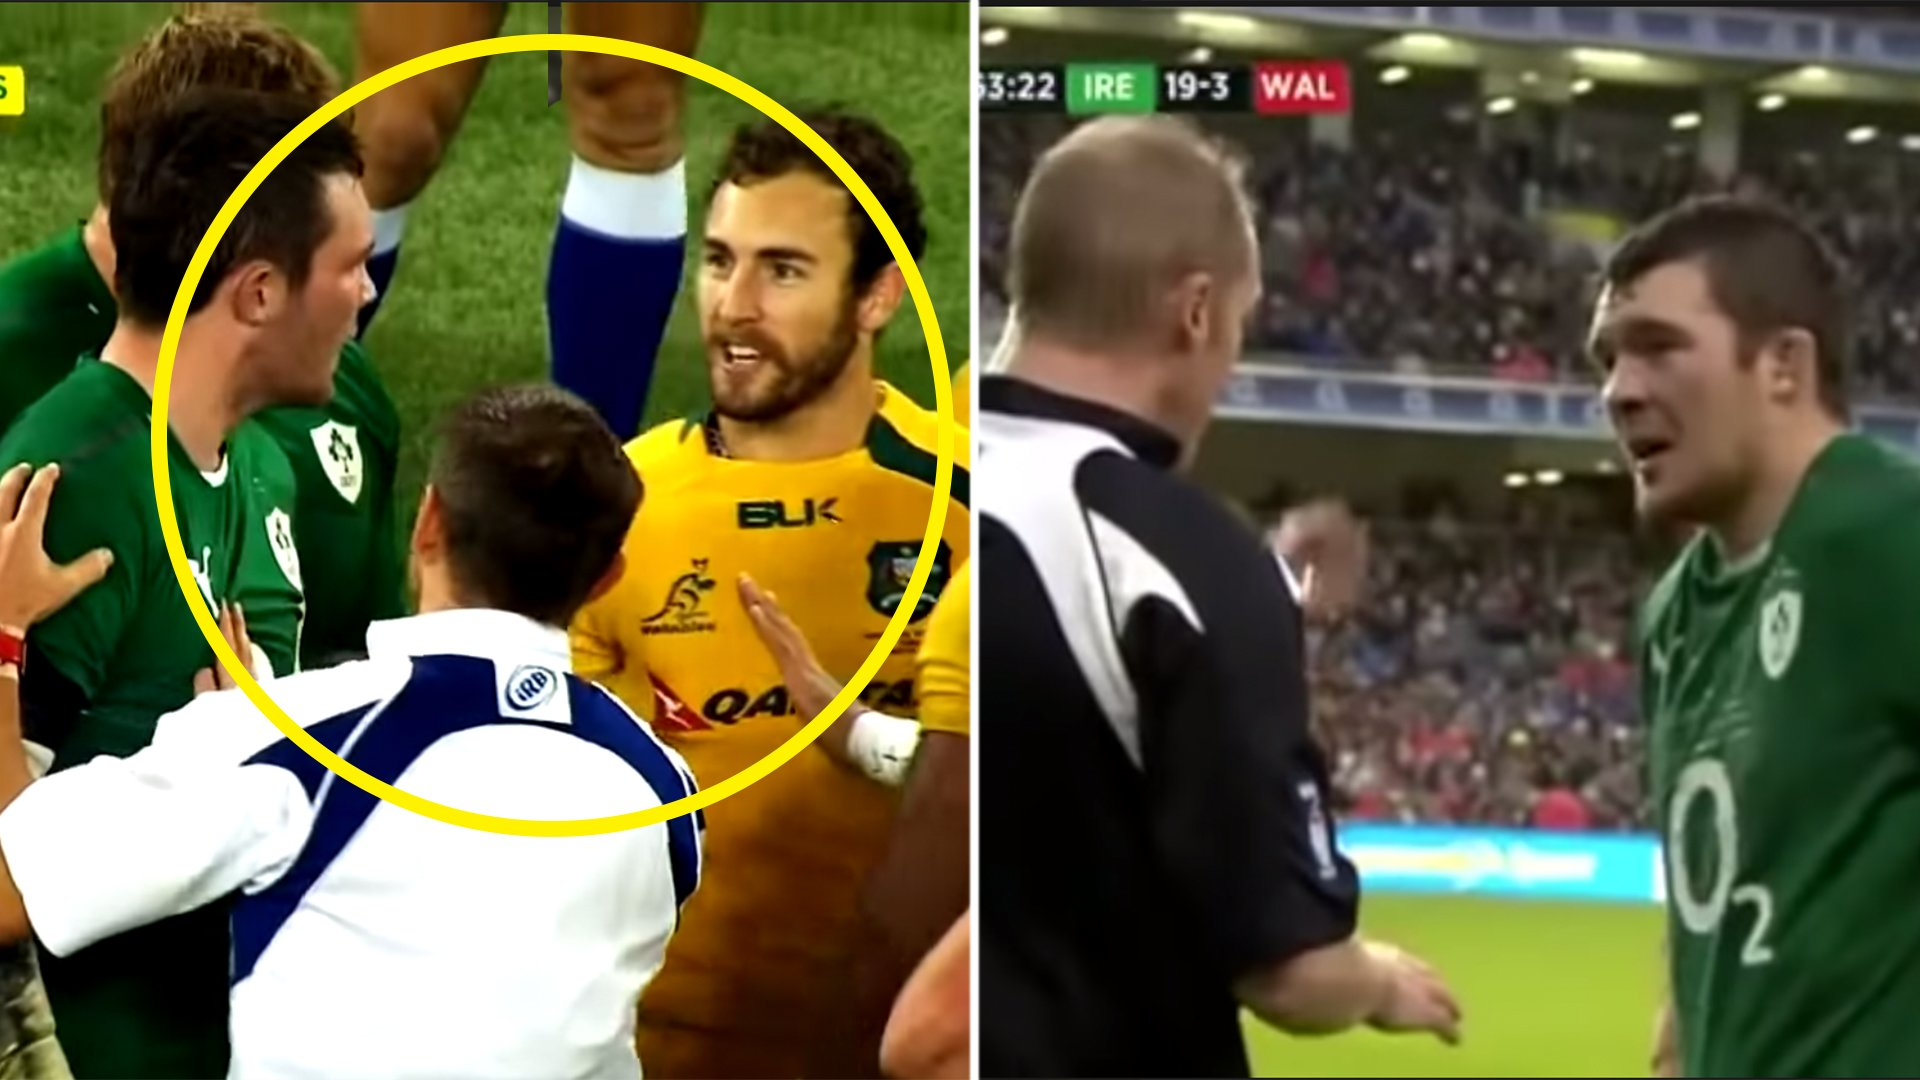 Irish rugby fans are furious after video tries to make Peter O'Mahony out as a thug